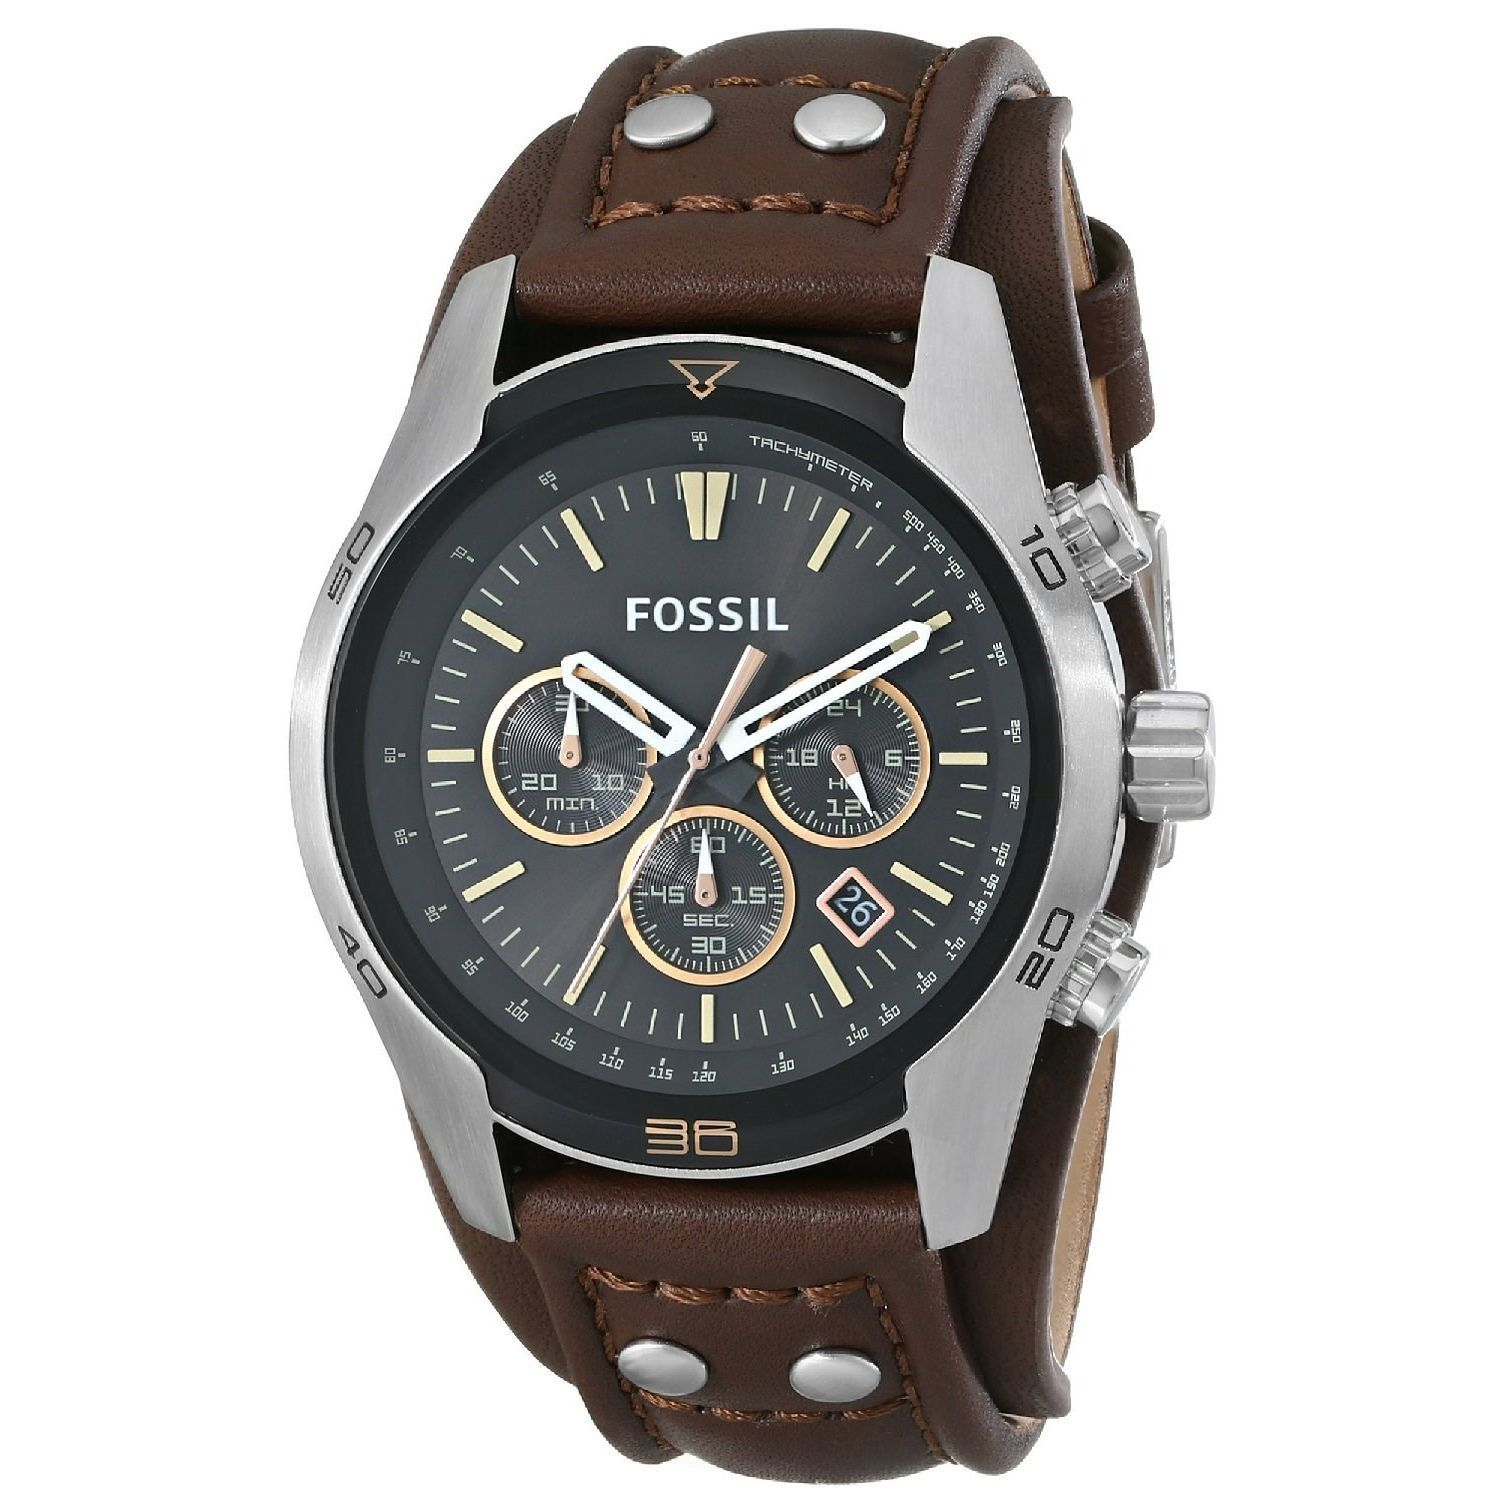 Lee Watch Jam Tangan Pria Kulit Cokelat Sporty M69 Cek Harga Cooper Lc 36g A Strap Leather Hitam Fossil Men S Ch2891 Coachman Brown Free Shipping Today Overstock 16409719